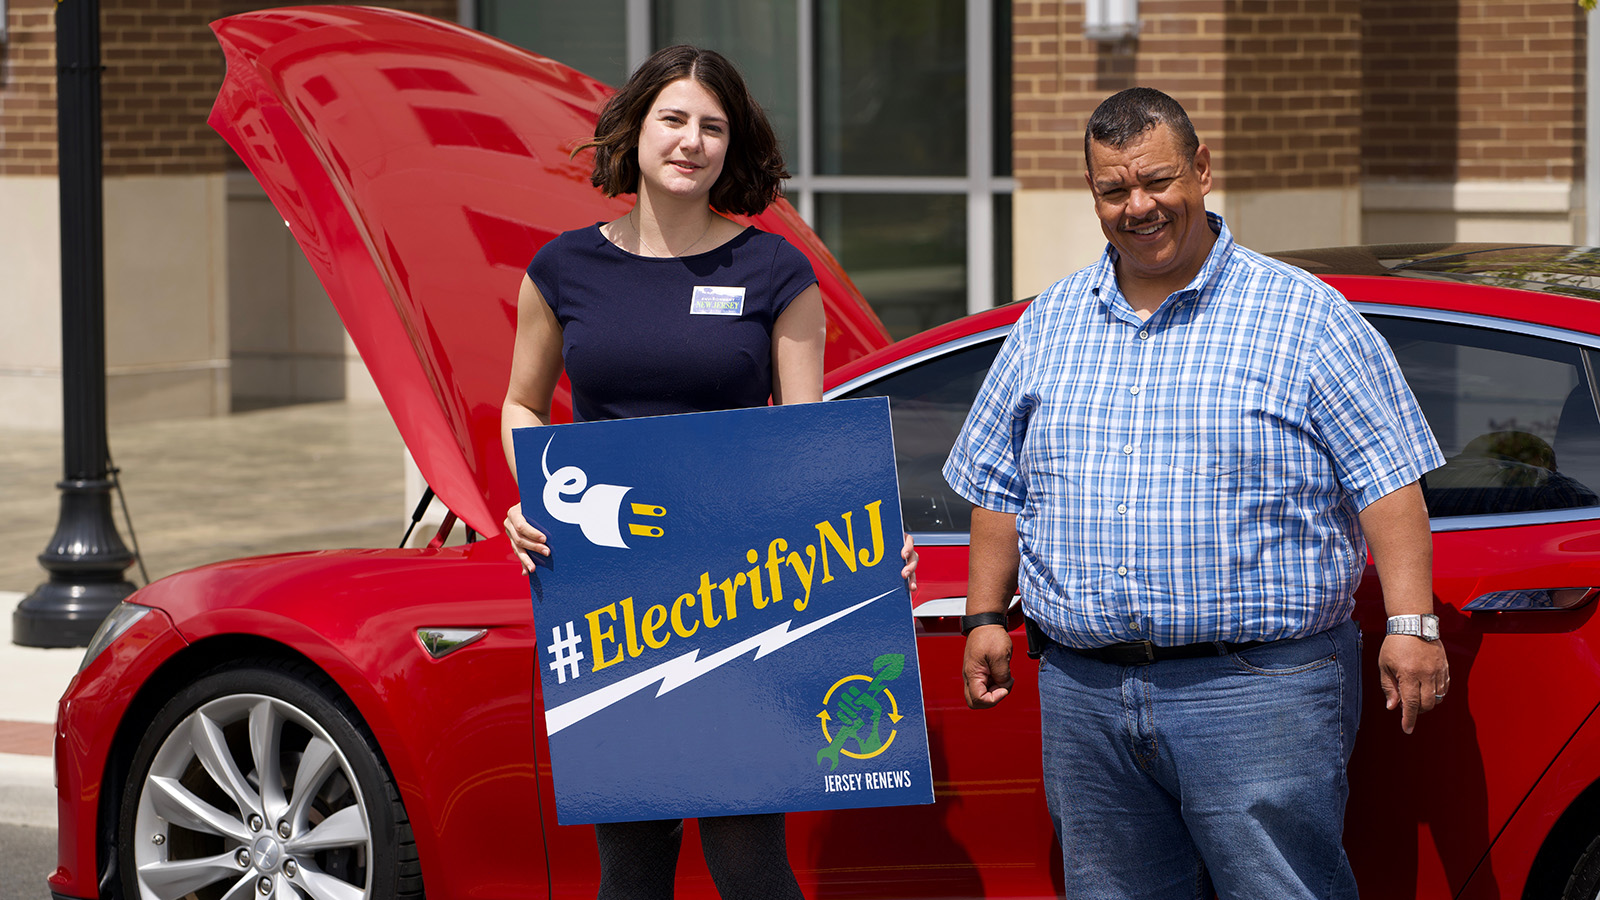 <h4>TO GET TO ZERO CARBON: ELECTRIFY CARS</h4><h5>We're calling for all new cars in WA to be electric by 2030.</h5>